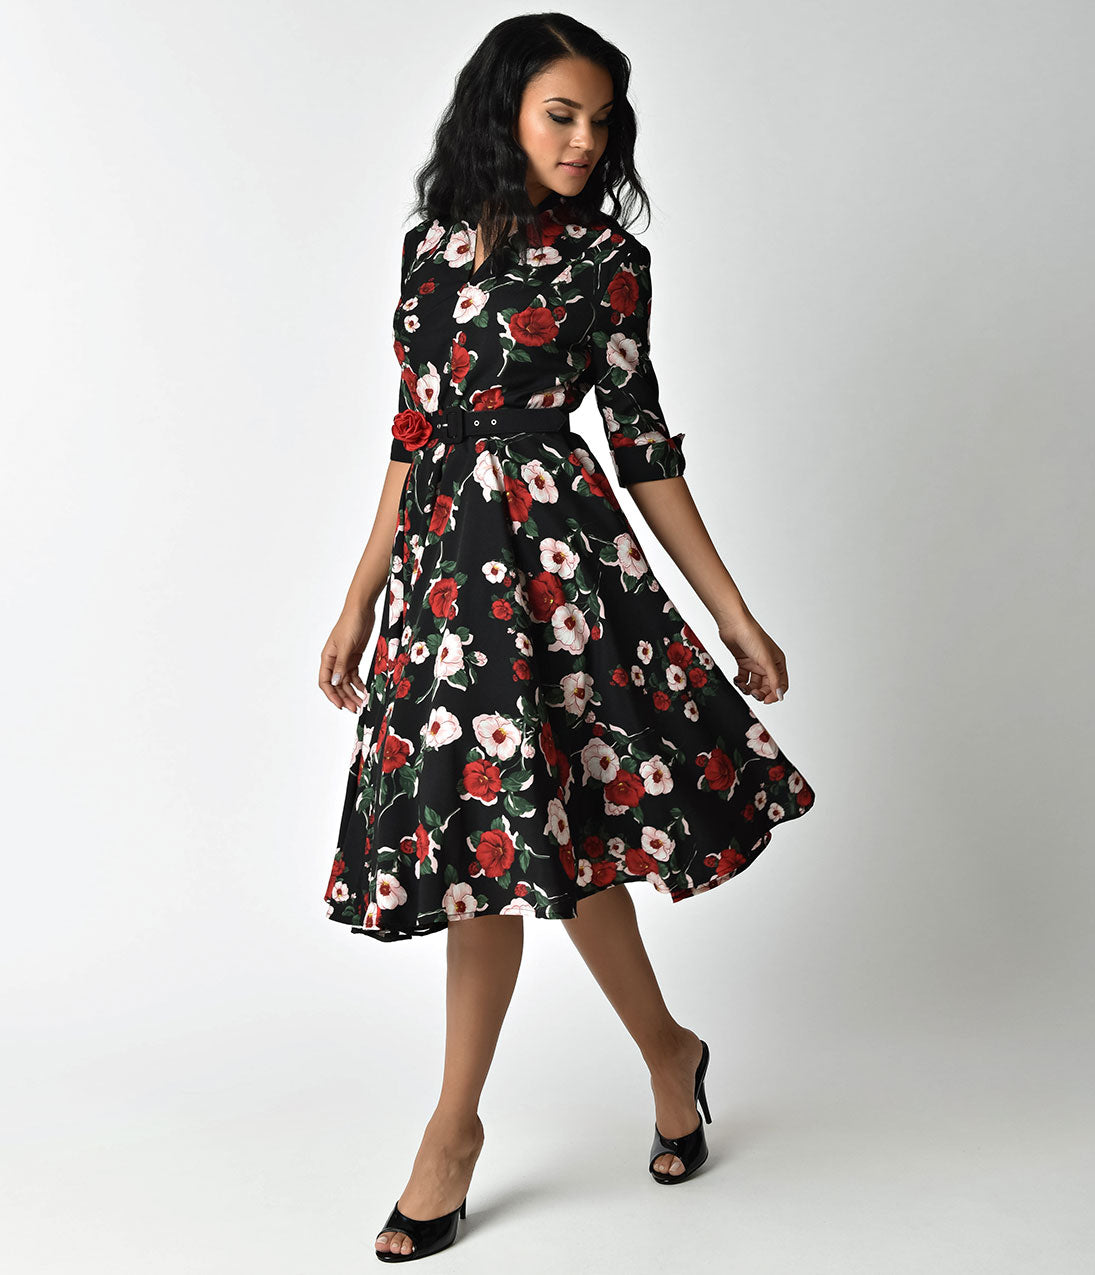 1940s Style Dresses Fashion Clothing